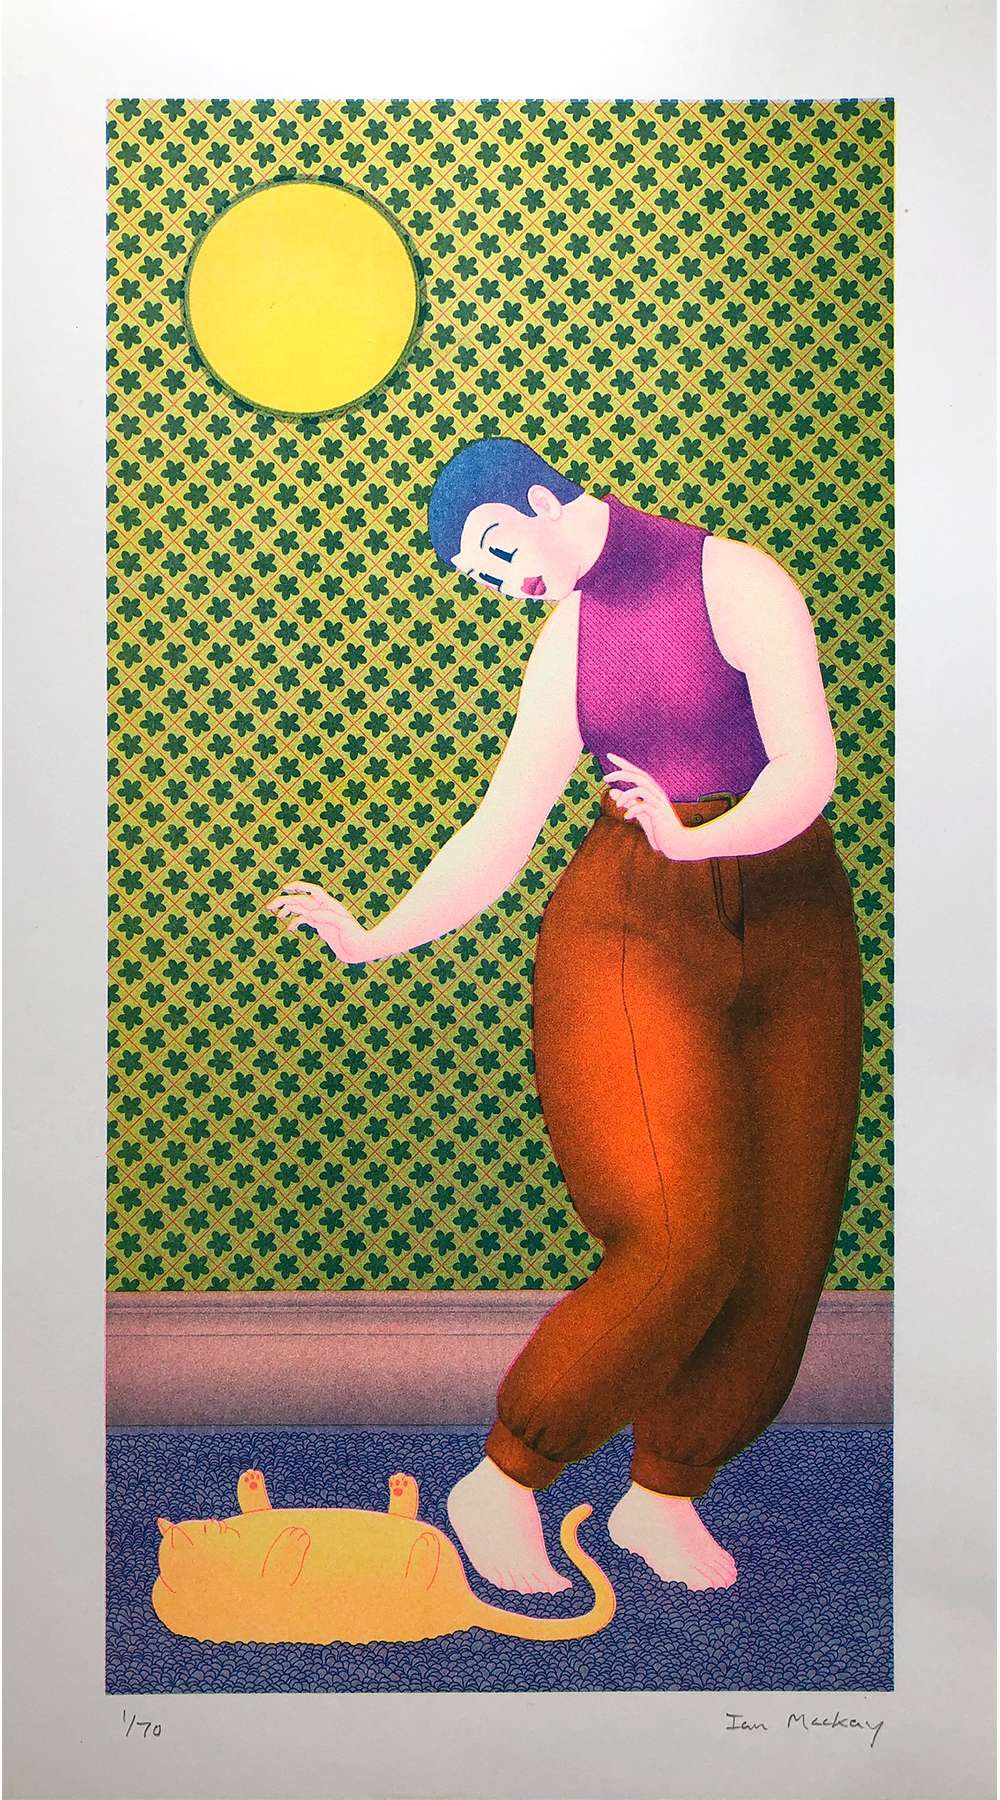 'Woman with pet' risograph print